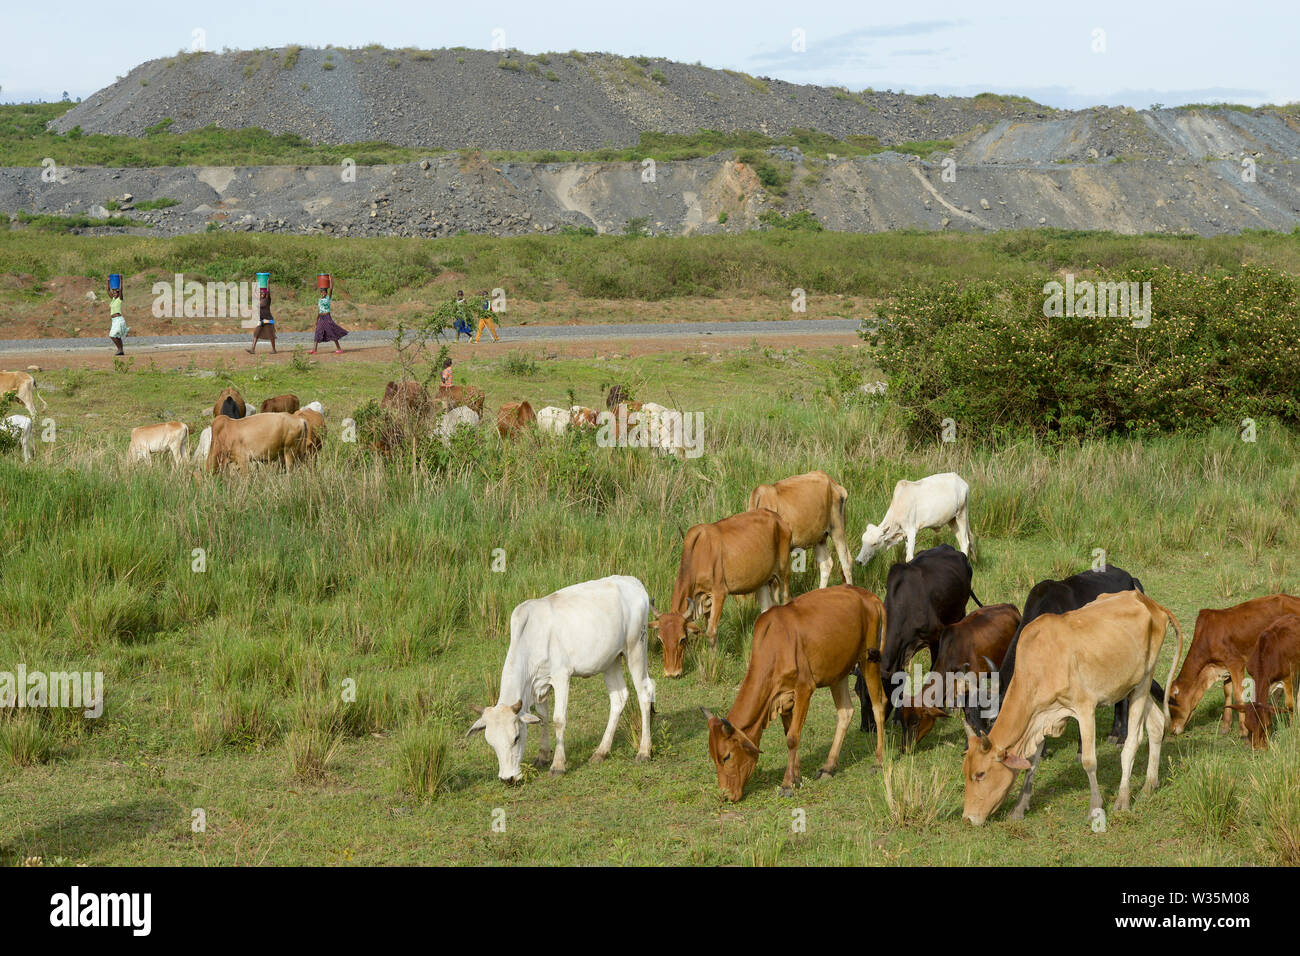 TANZANIA, Tarime Distrikt, Nyamongo, canadian Barrick Gold's subsidiary Acacia Mara Gold Mine, view to overburden disposals / TANSANIA, Blick auf Abraumhalden der Acacia Gold Mine im Afrikanischen Grabenbruch - Stock Image